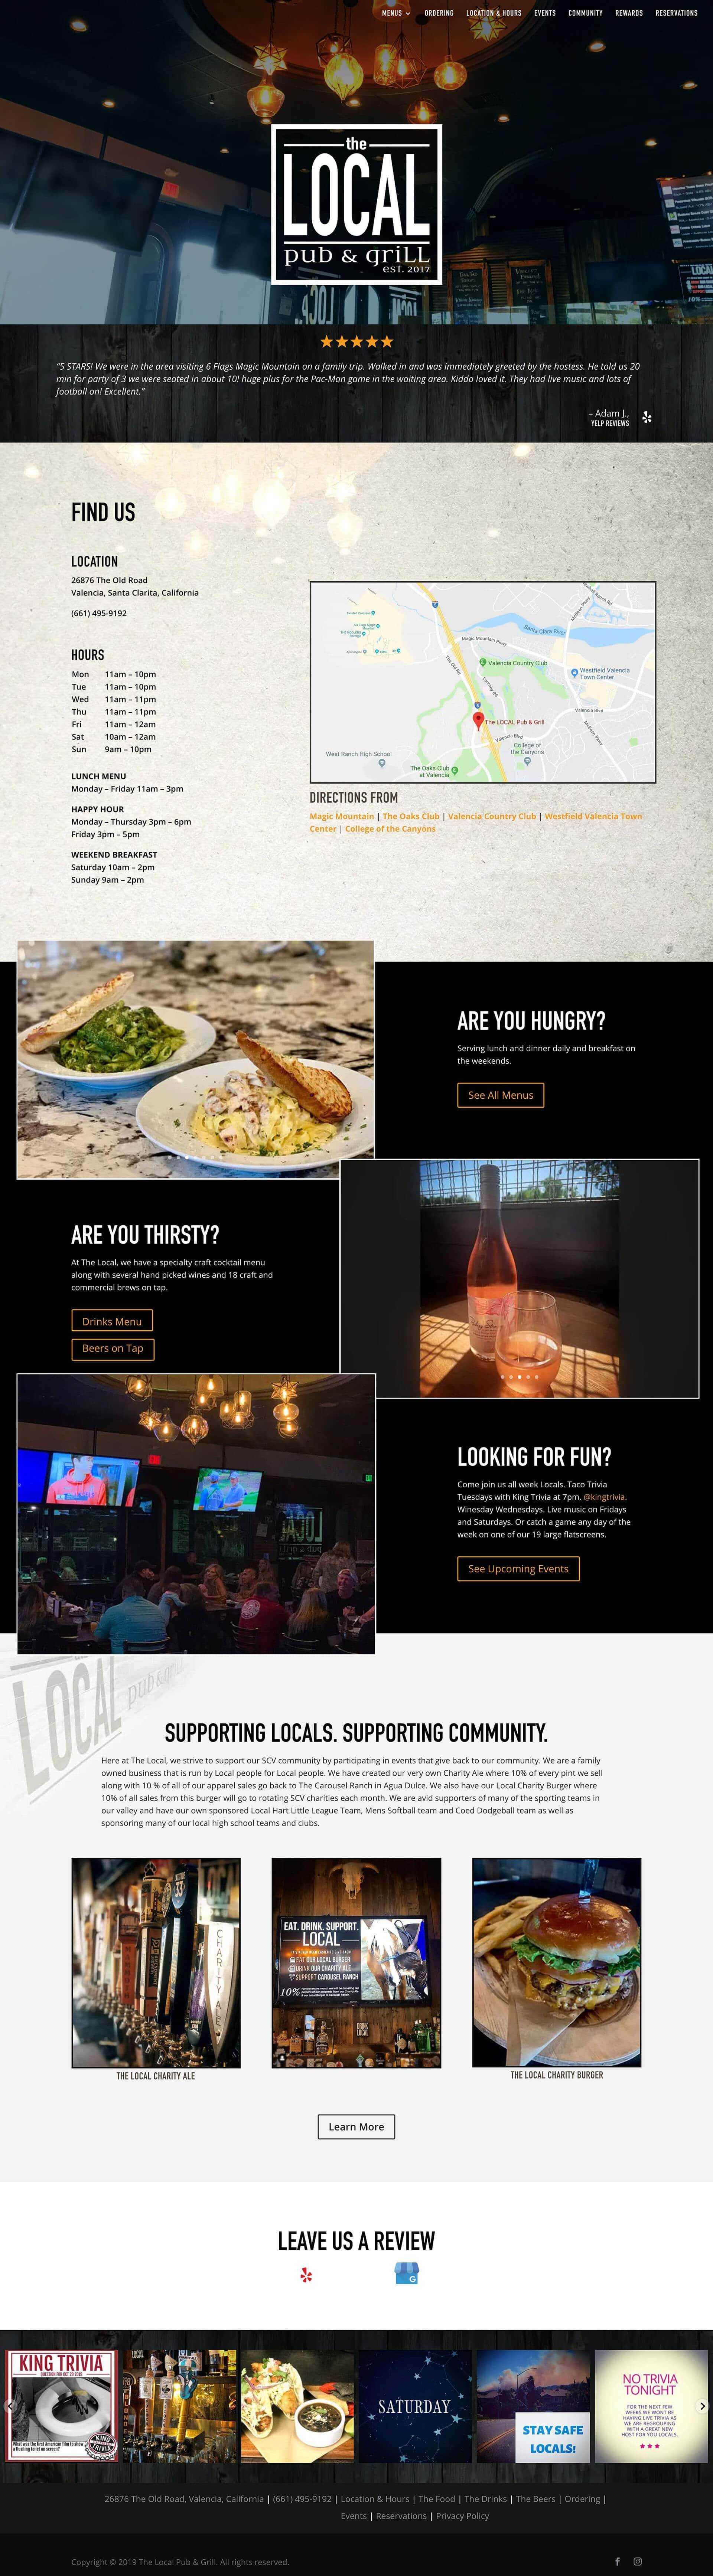 The Local Pub and Grill home page